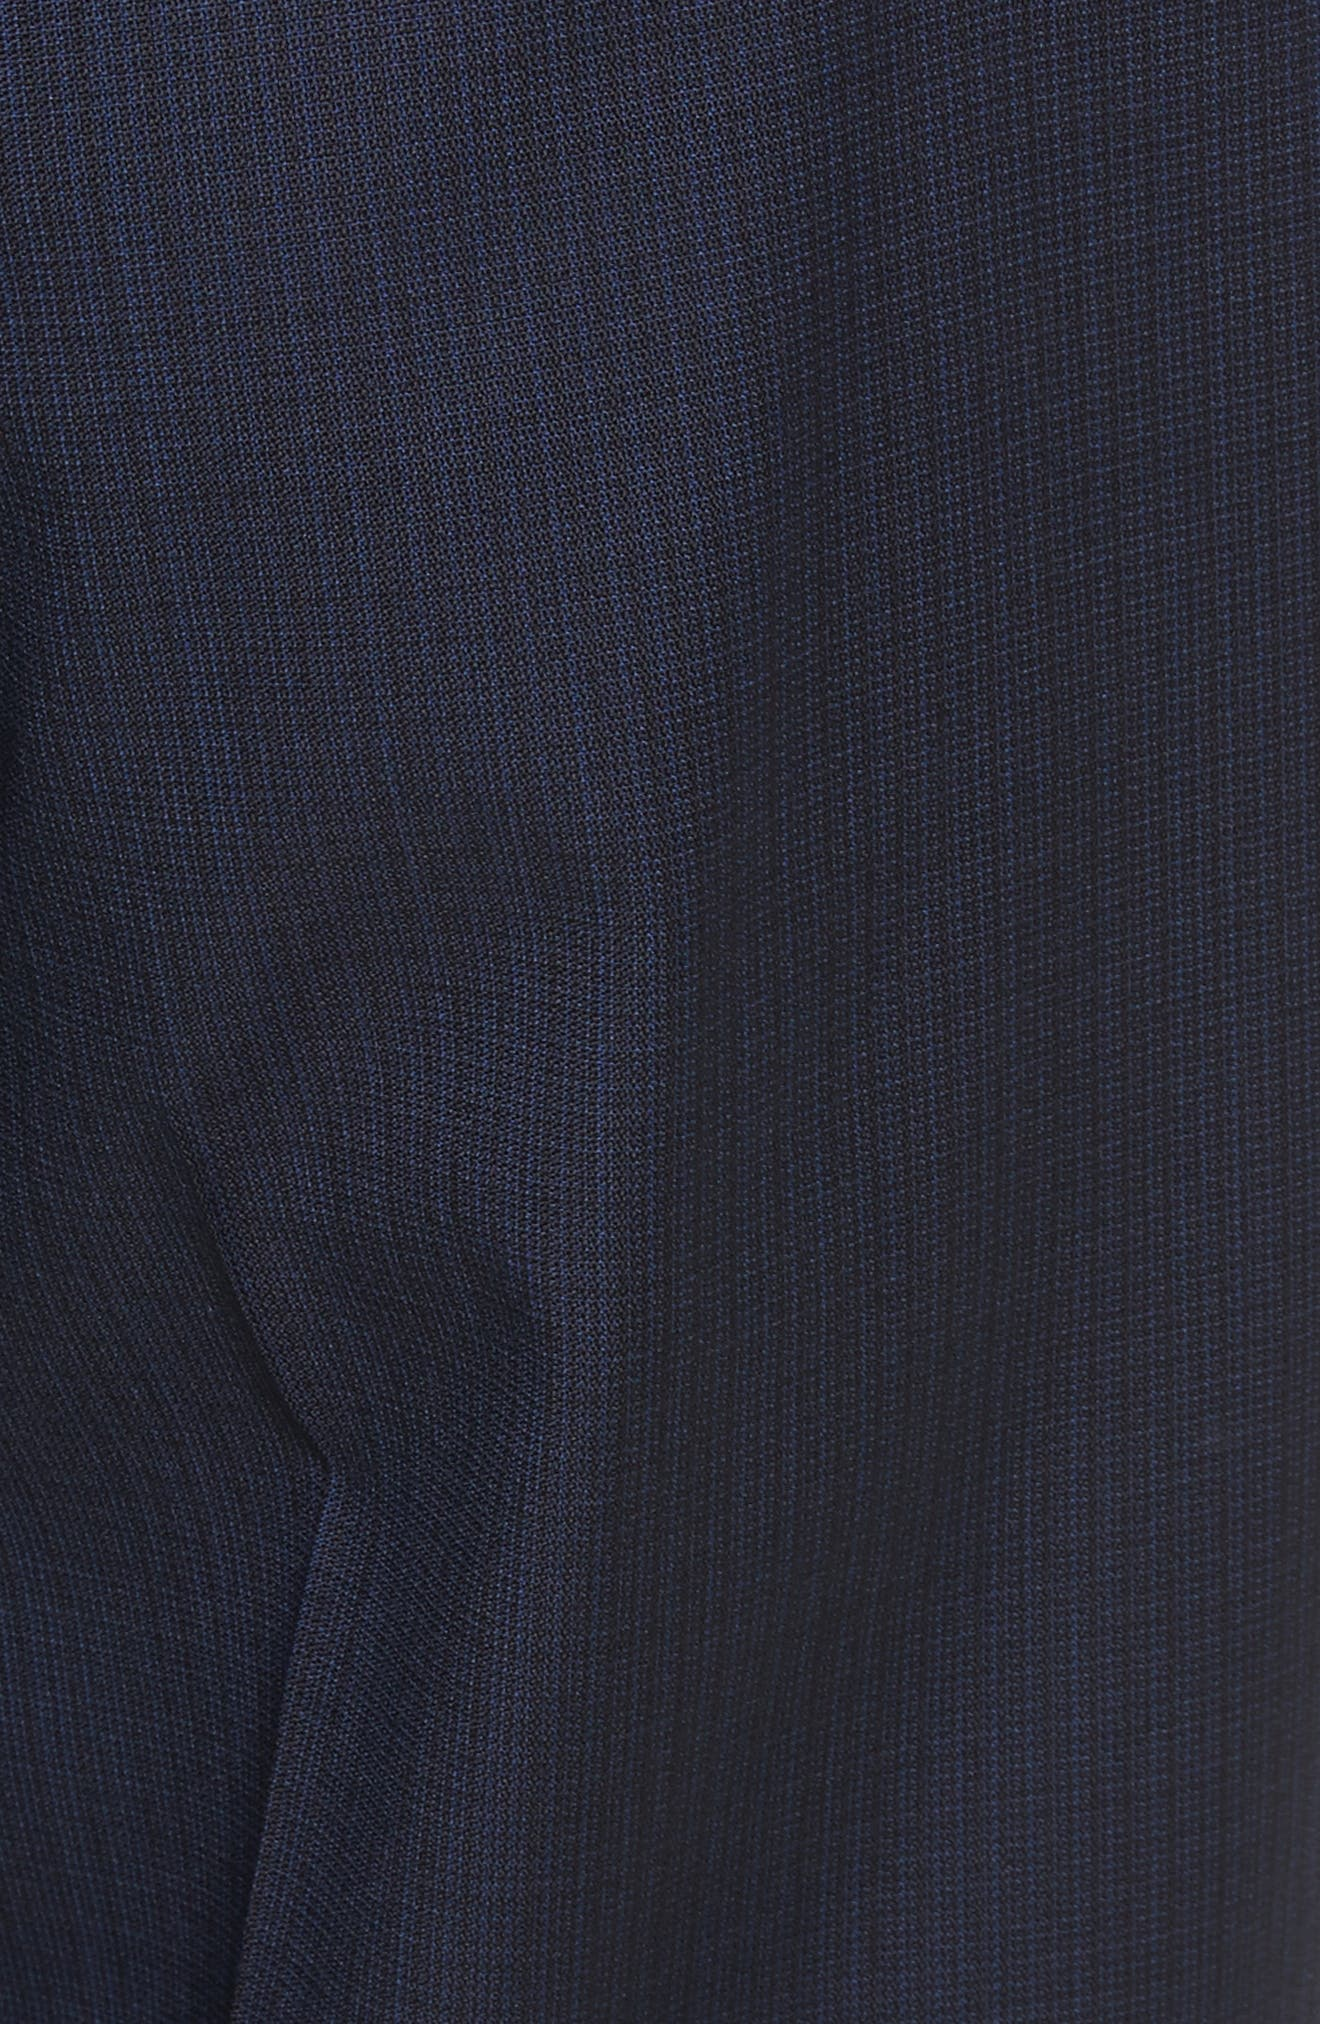 Flat Front Check Wool Trousers,                             Alternate thumbnail 2, color,